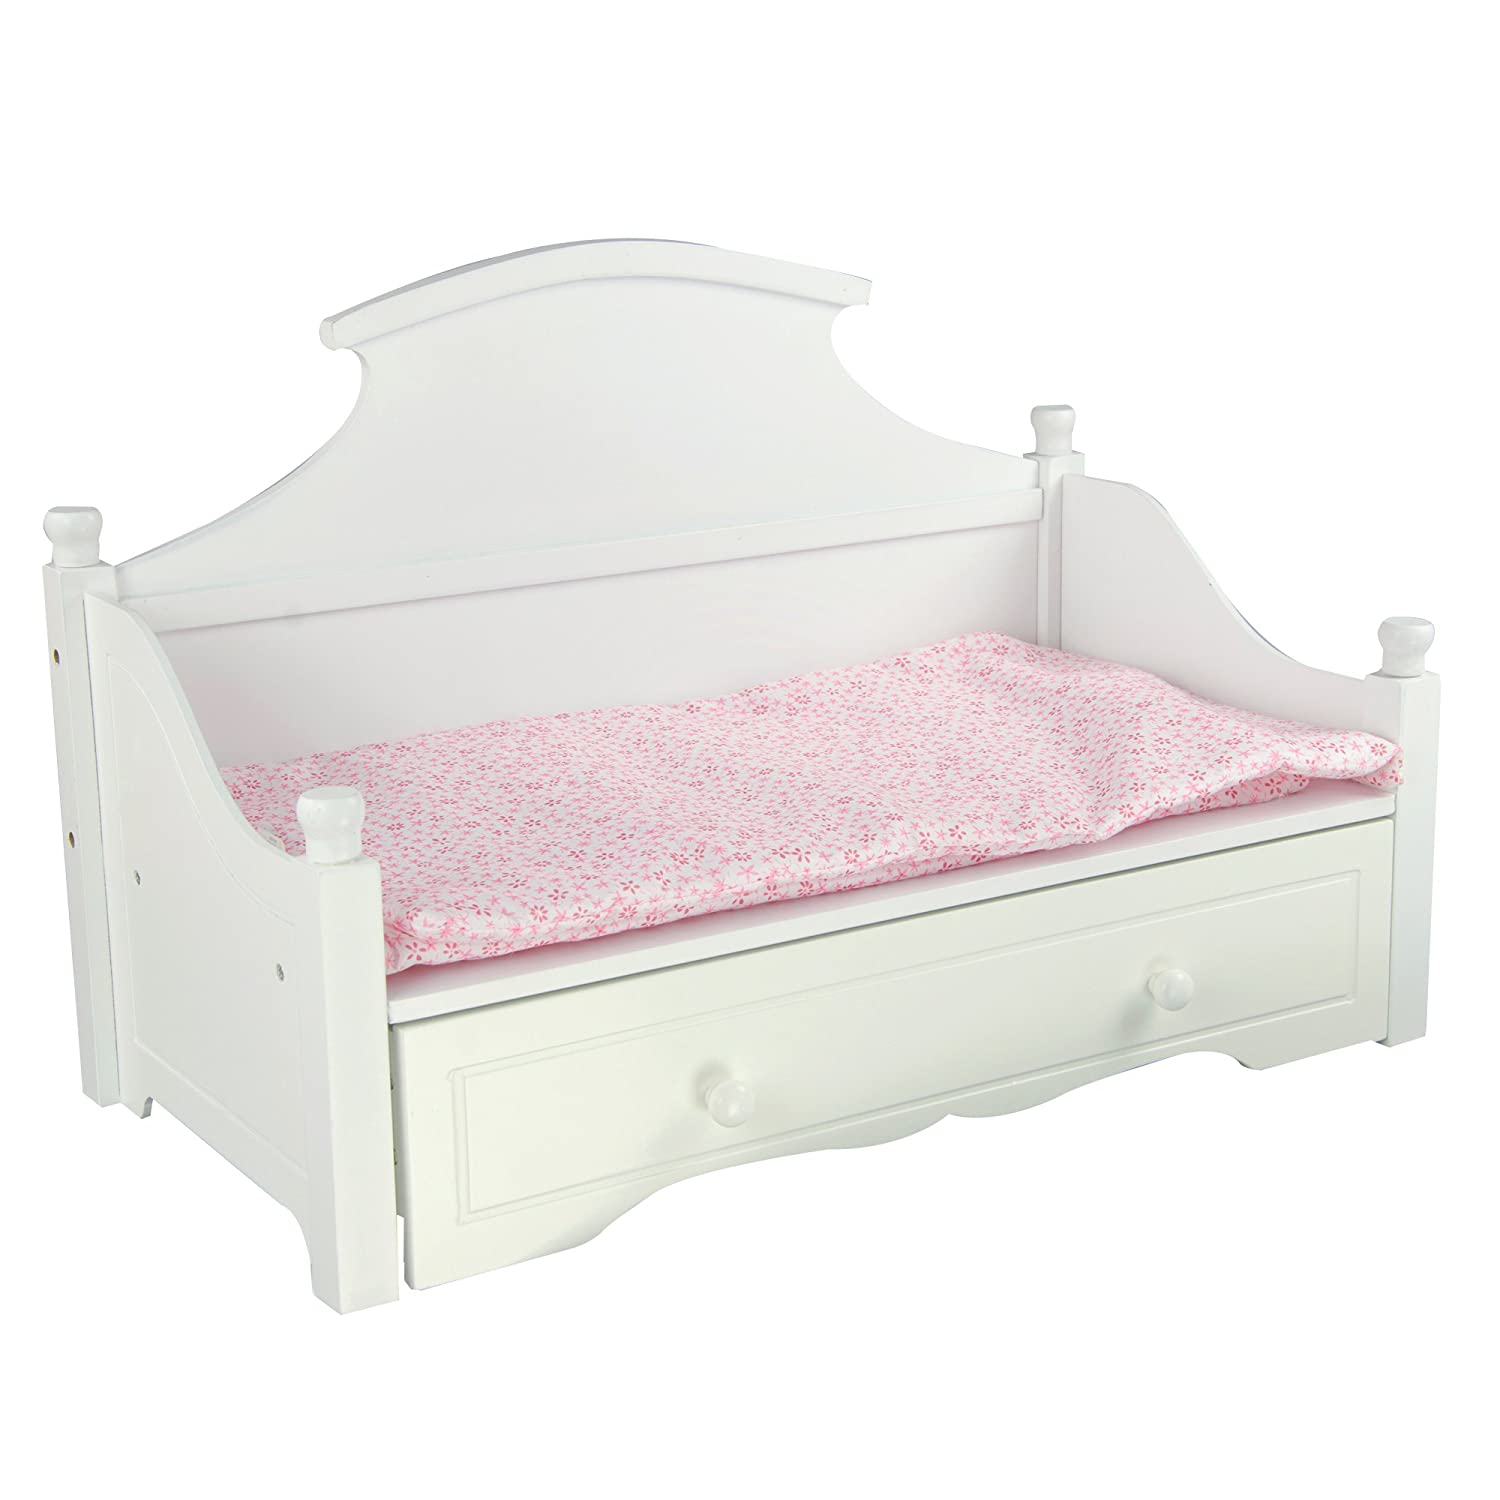 amazoncom little world sweet girl white trundle bed with pink floral mettress wooden 18 inch doll furniture toys u0026 games